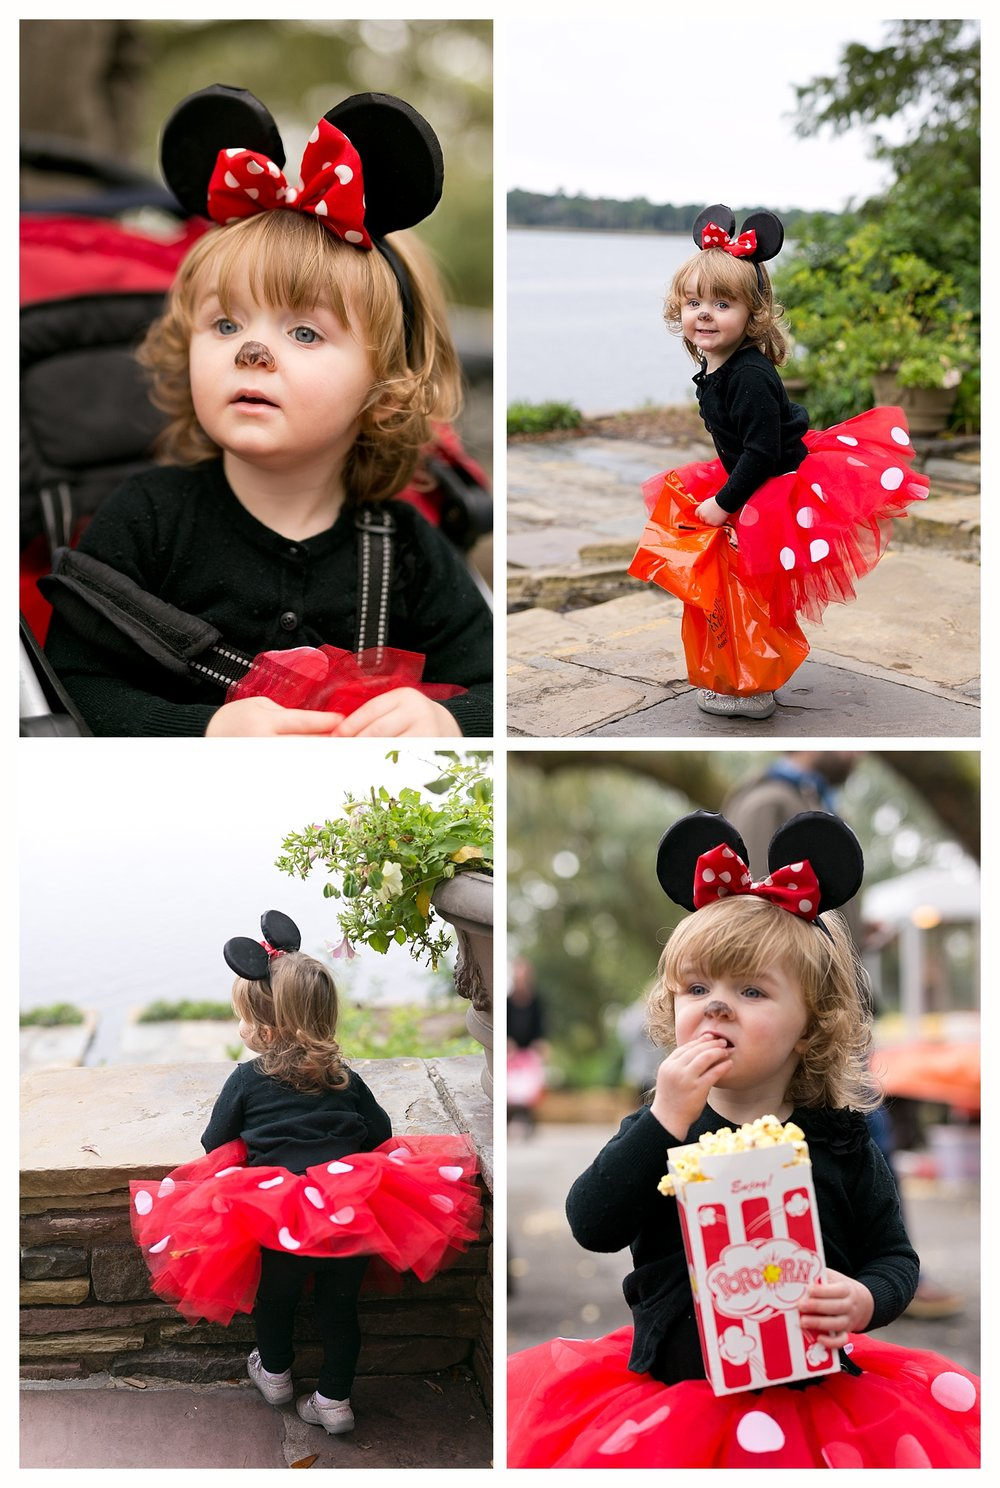 Minnie Mouse Halloween costume for two-year-old girl